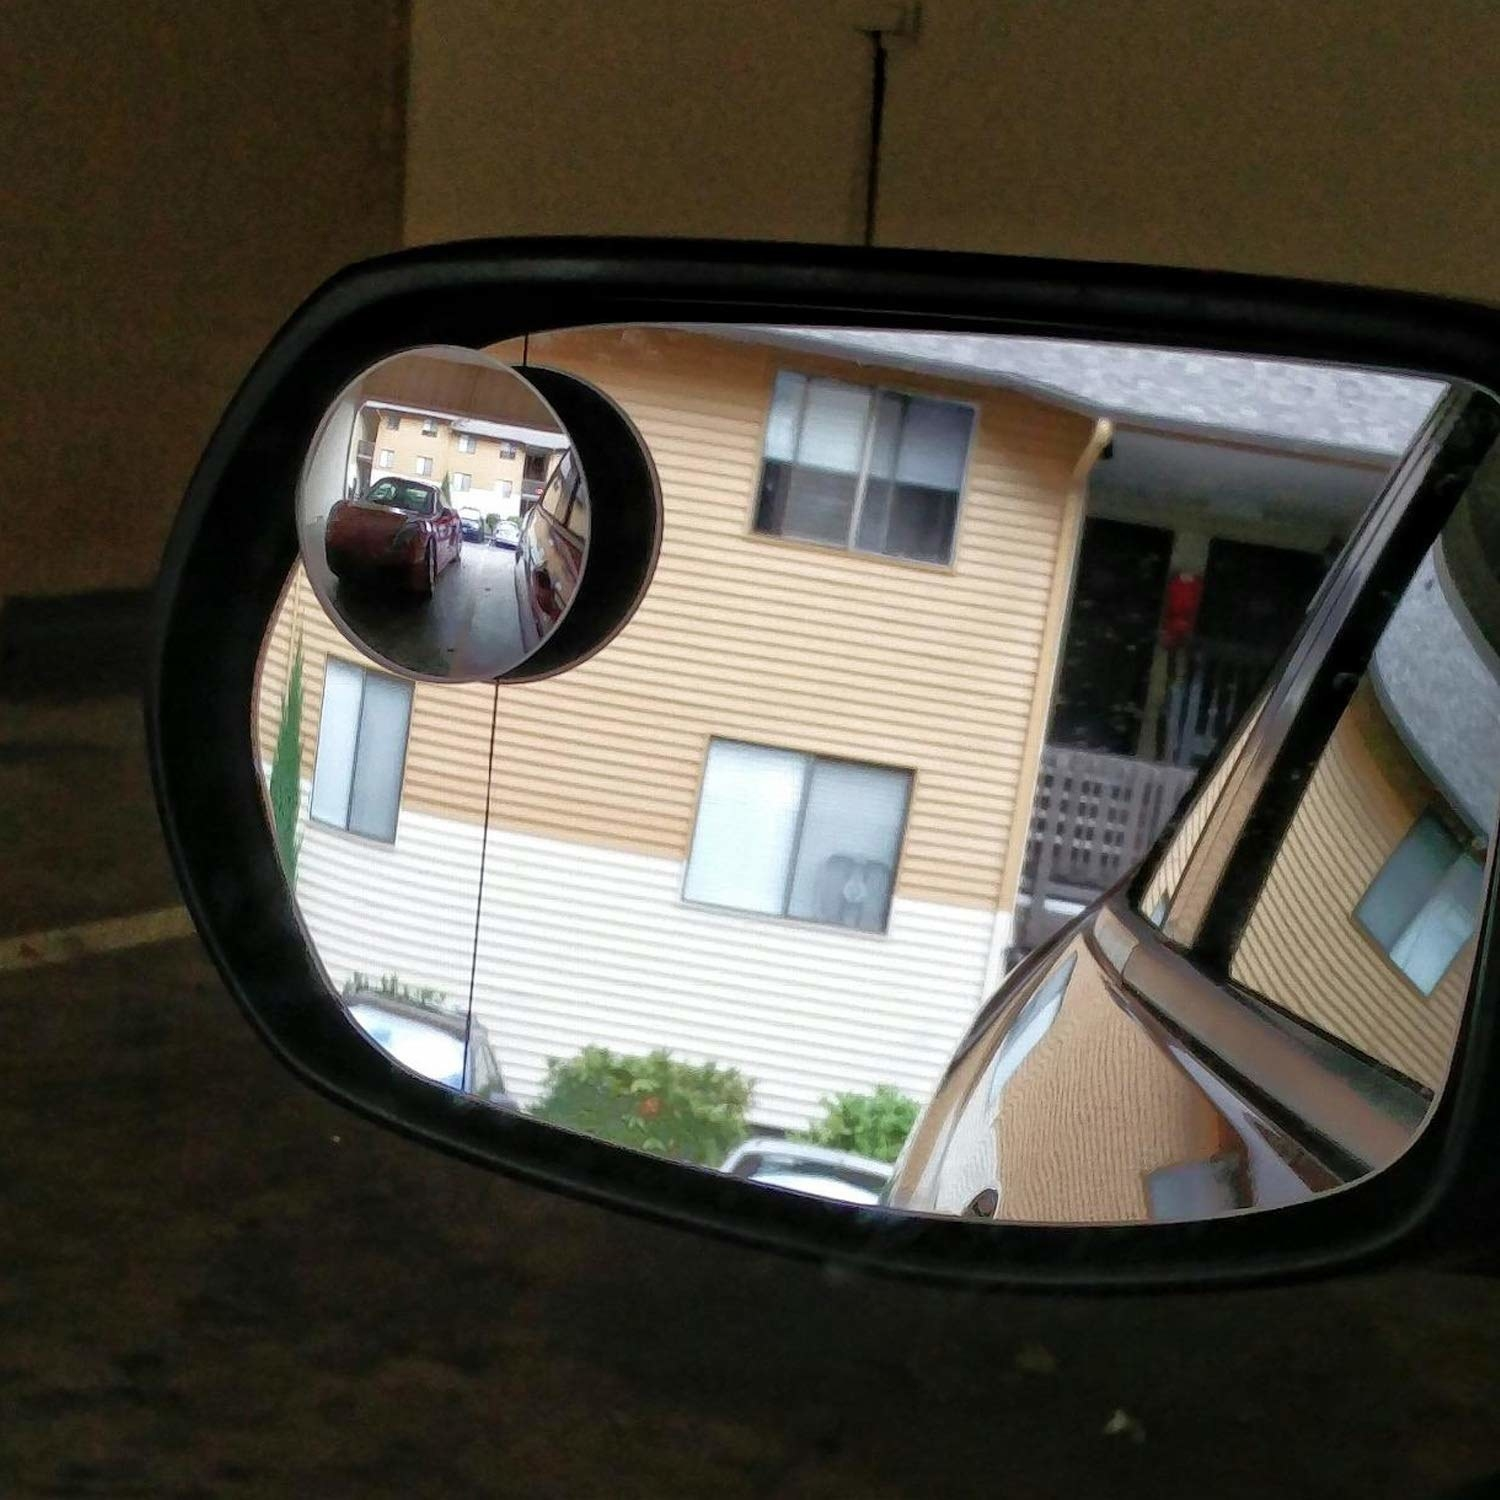 Car side mirror with circular addition helping view the back of car